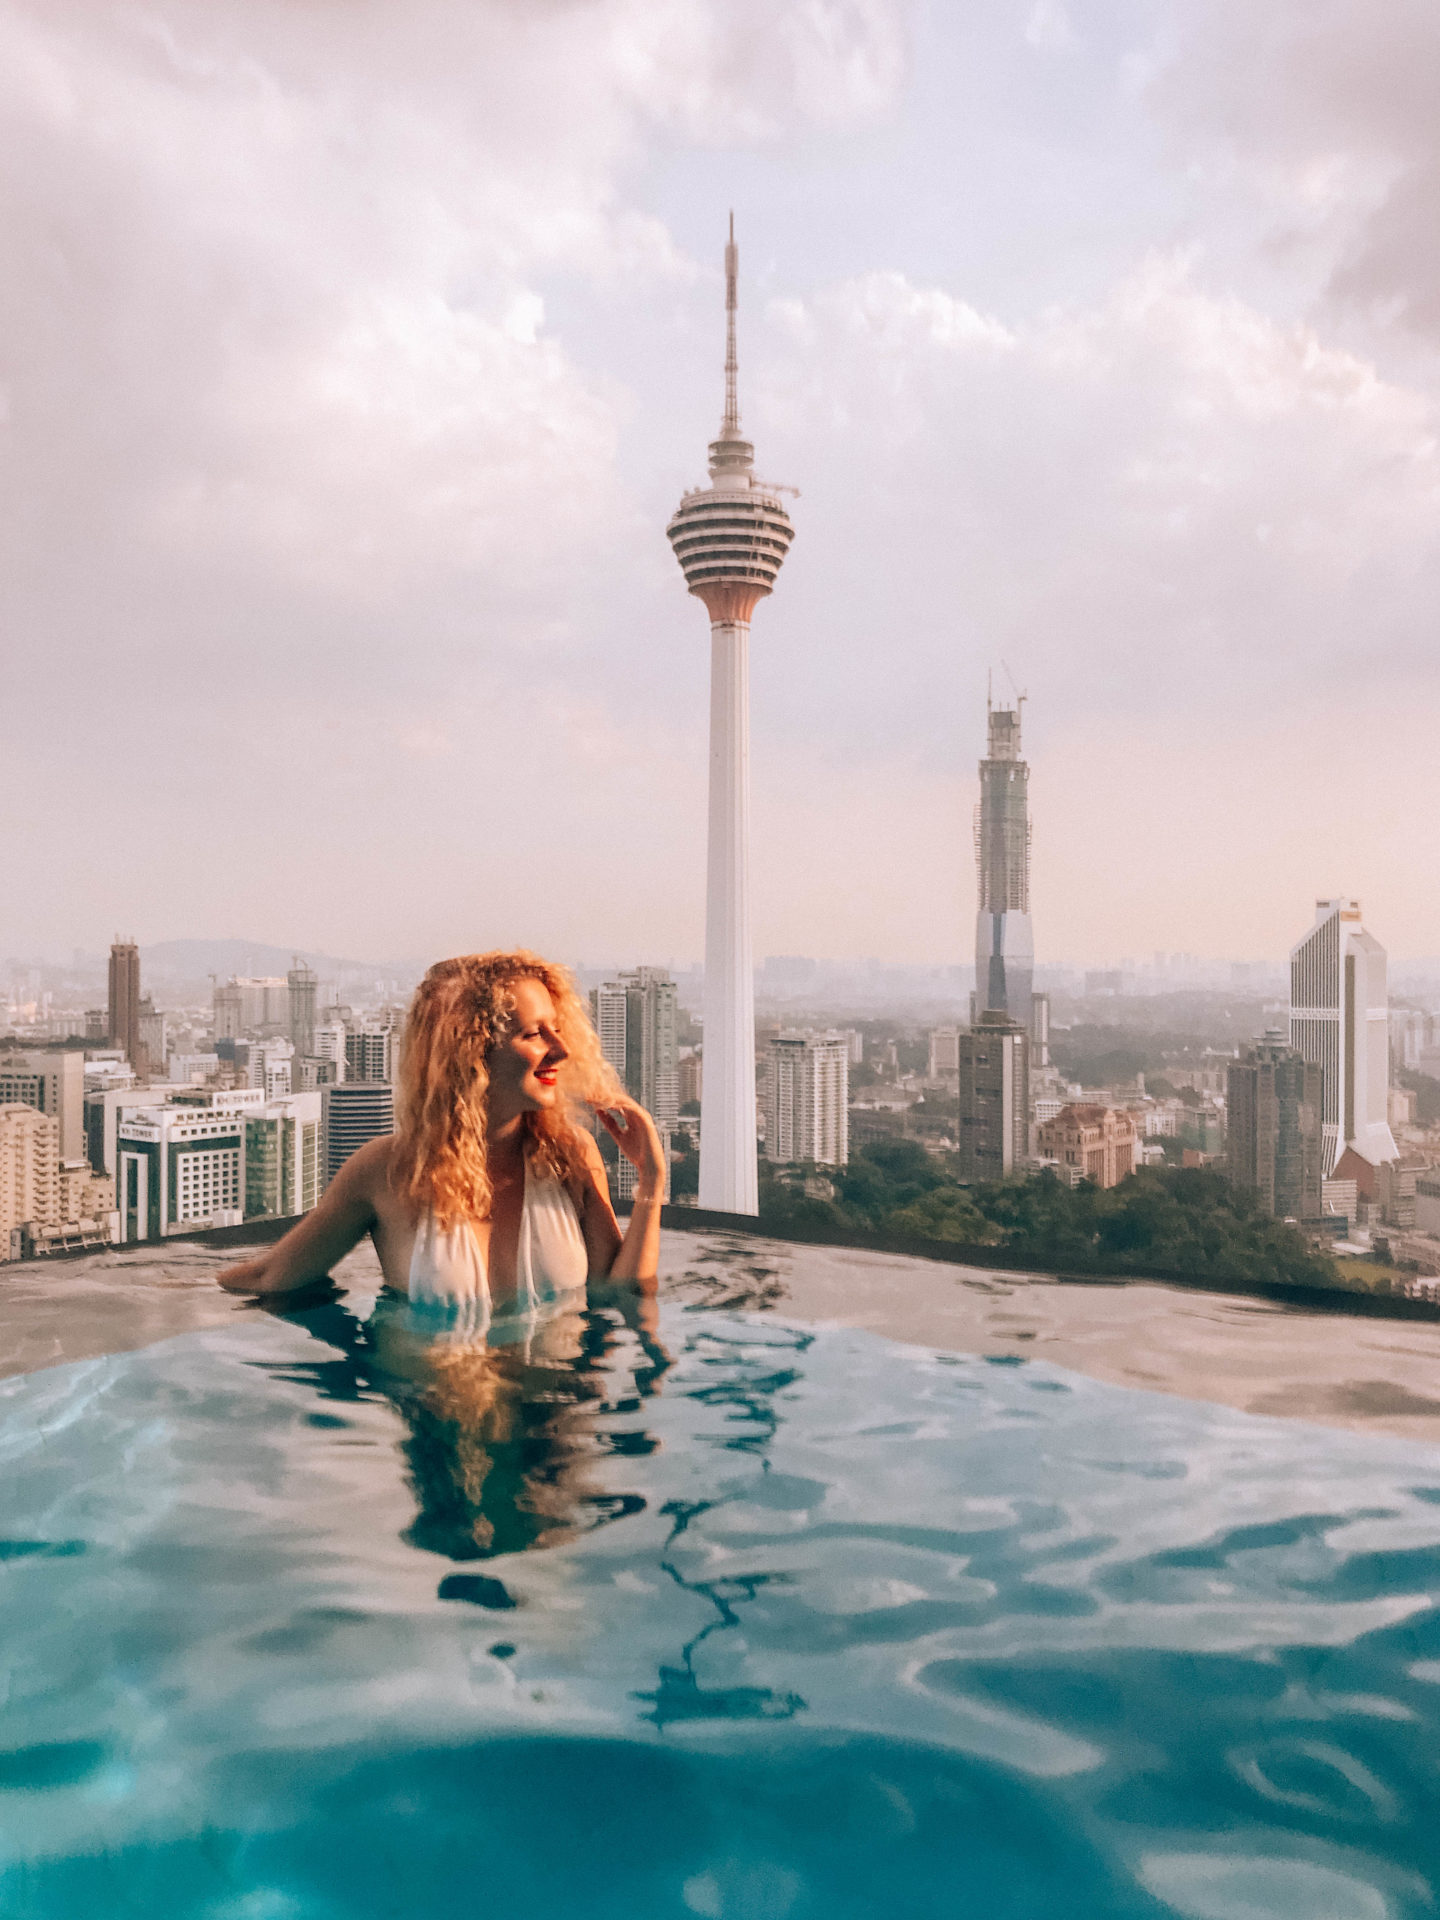 Best view of Kuala Lumpur skyline from a rooftop pool